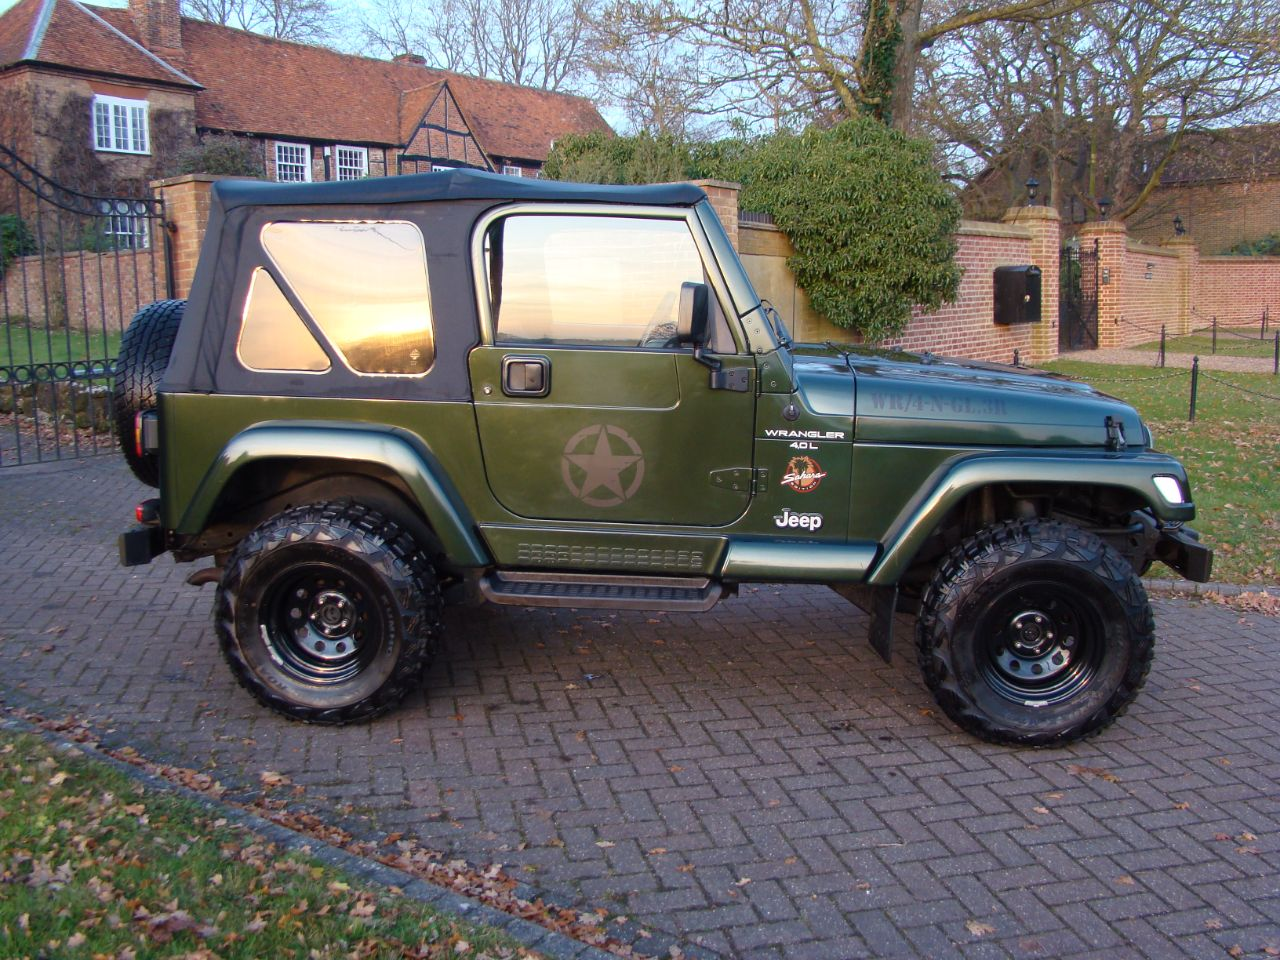 jeep wrangler 40 sahara for sale in luton bedfordshire claridges cars. Black Bedroom Furniture Sets. Home Design Ideas